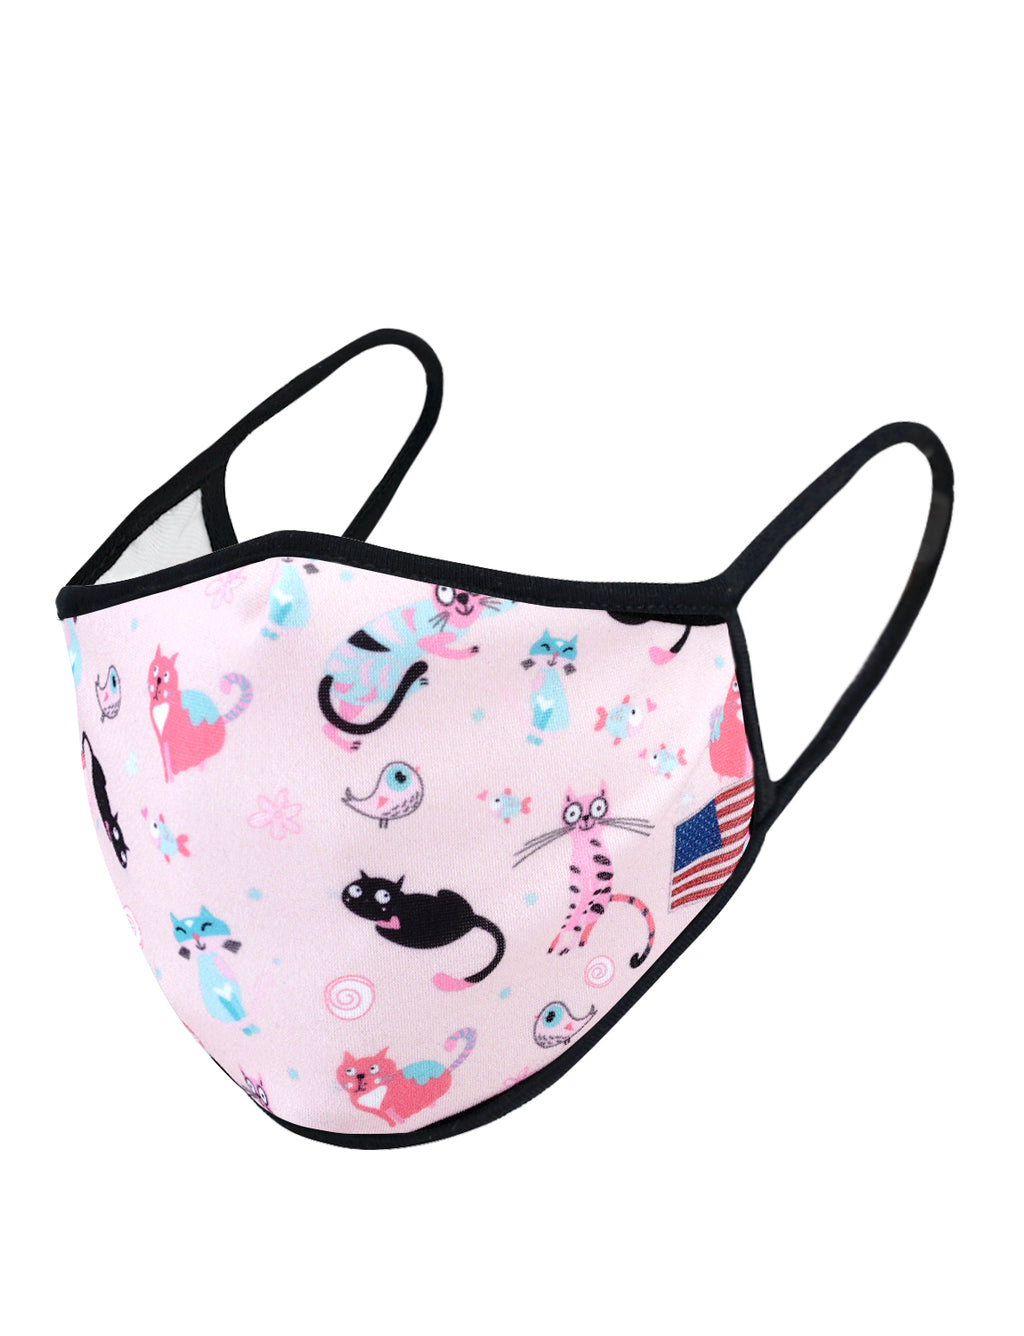 Adult face mask, Face covering, Face Mask, Reusable mask, Washable Mask, Printed fashion Mask, UrbanX, Urbanxapparel, Dust mask, breathable mask, cotton face mask, comfortable face mask, Fashion trend,